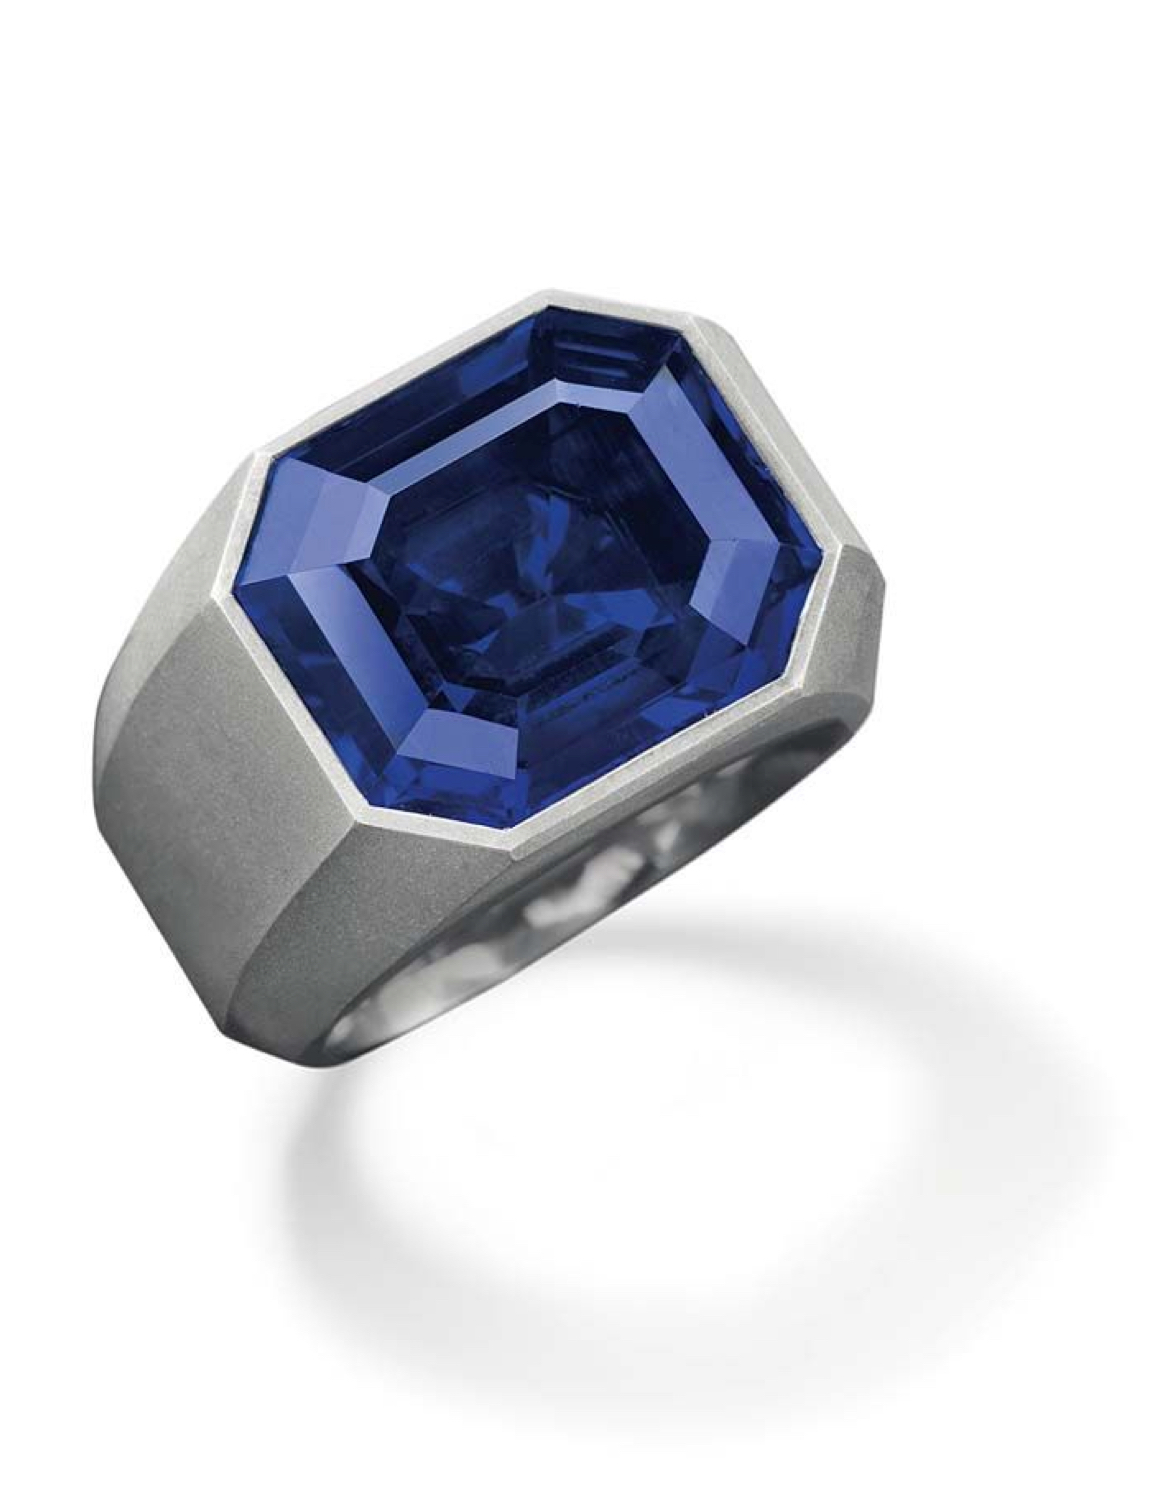 Tiffany's new collection similarities to hemmerle blue sapphire design.